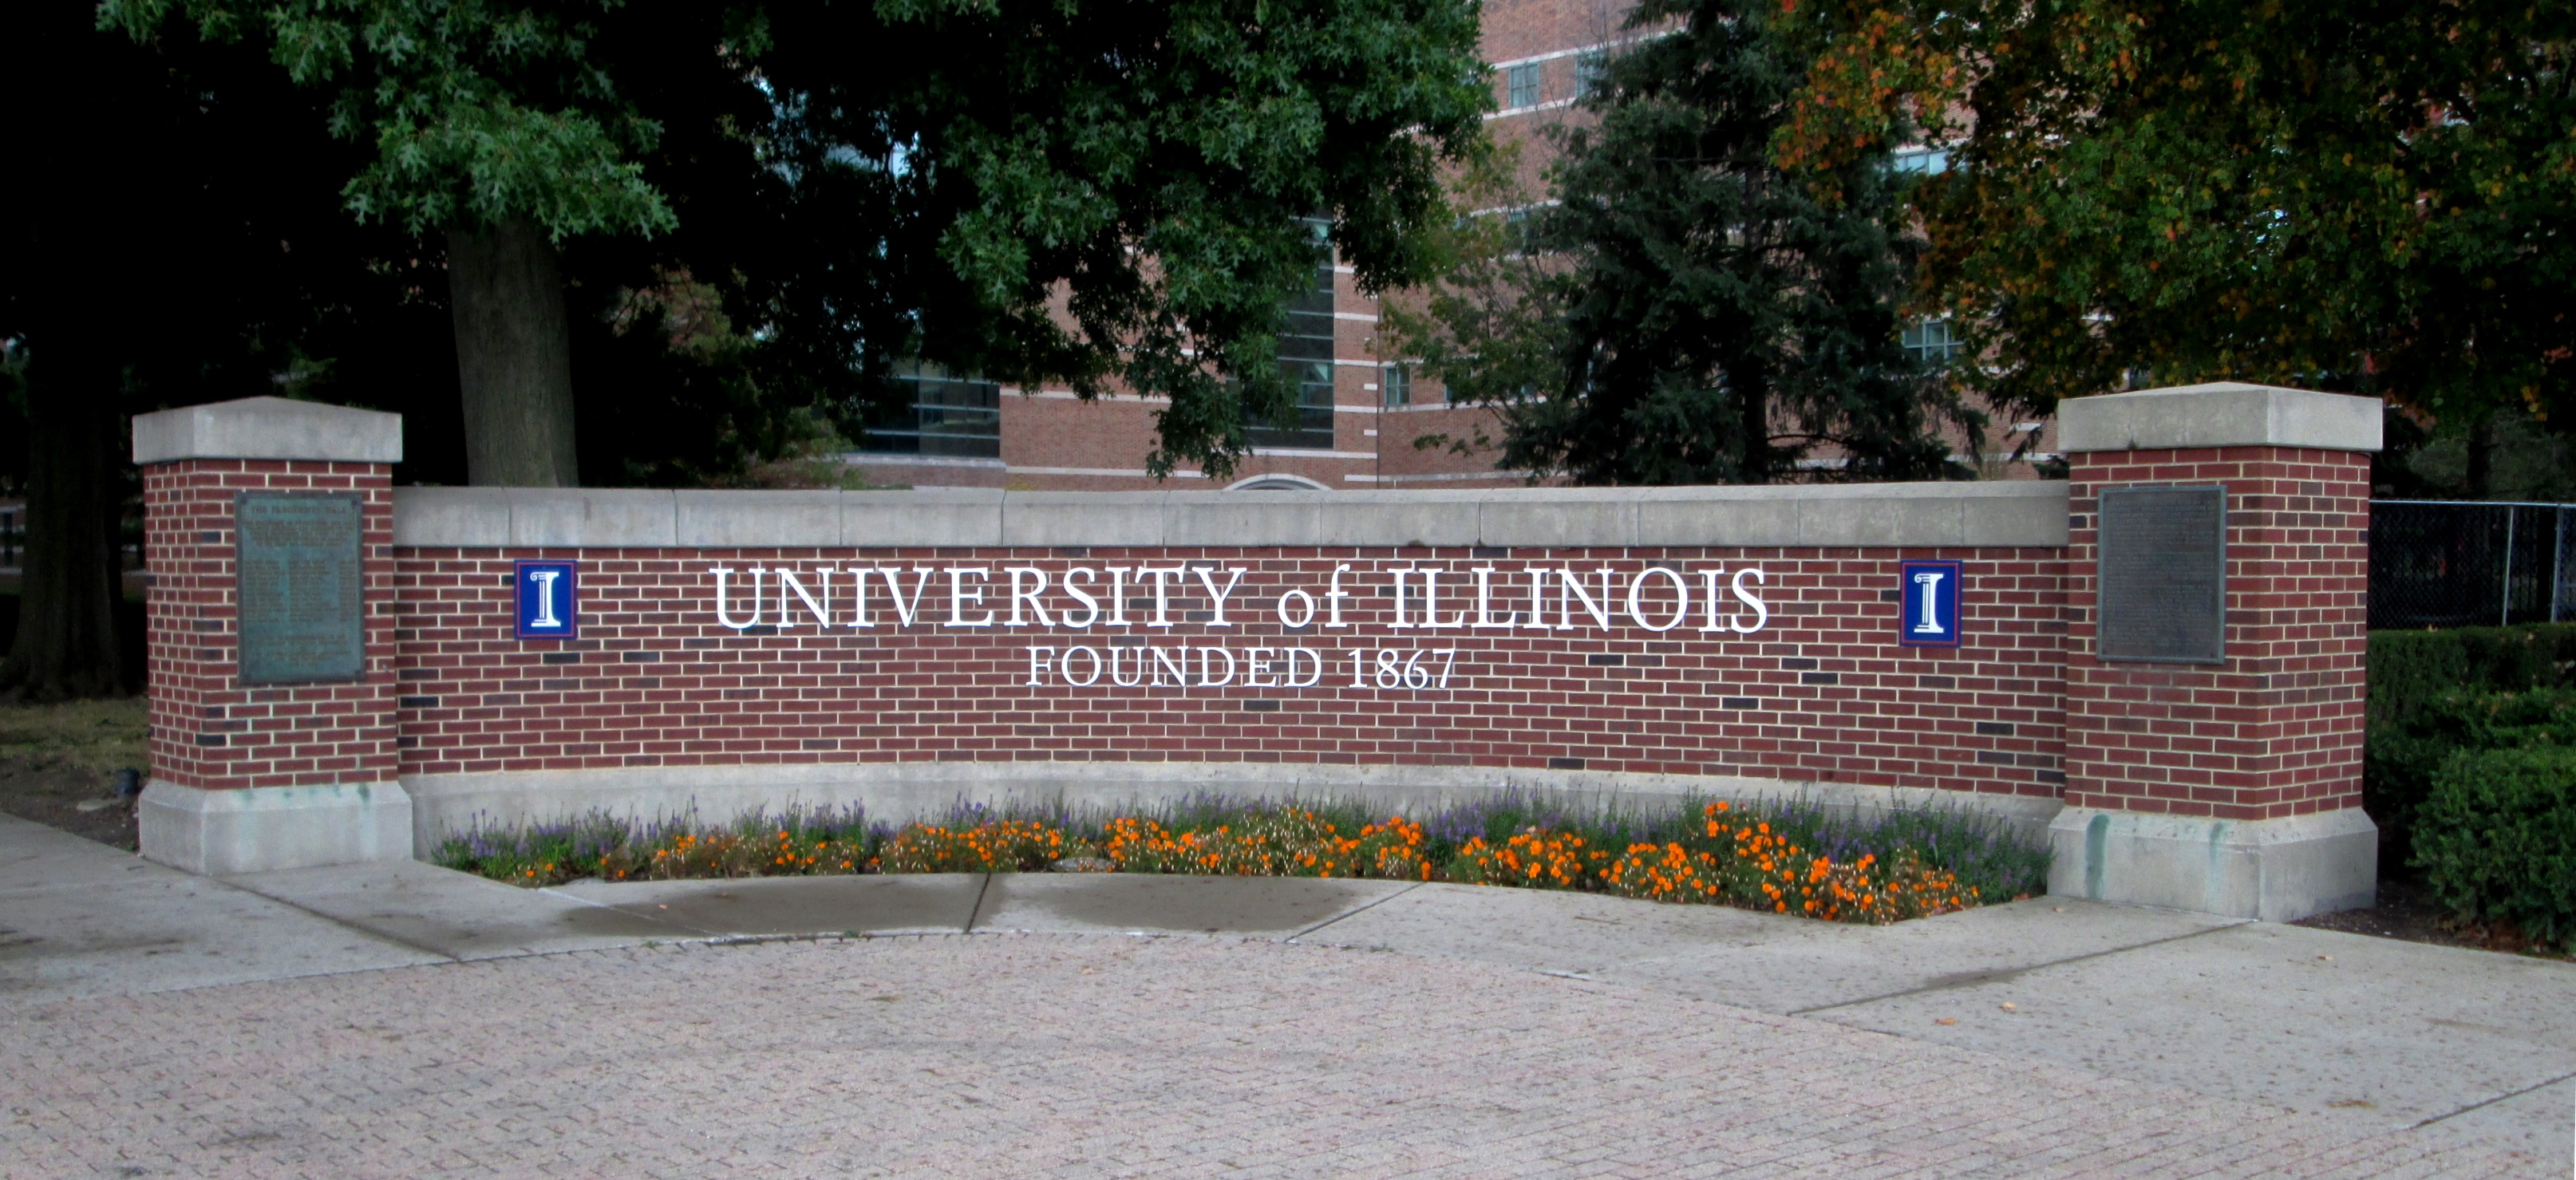 UNIVERSITY OF ILLINOIS - CHICAGO, ILLINOIS